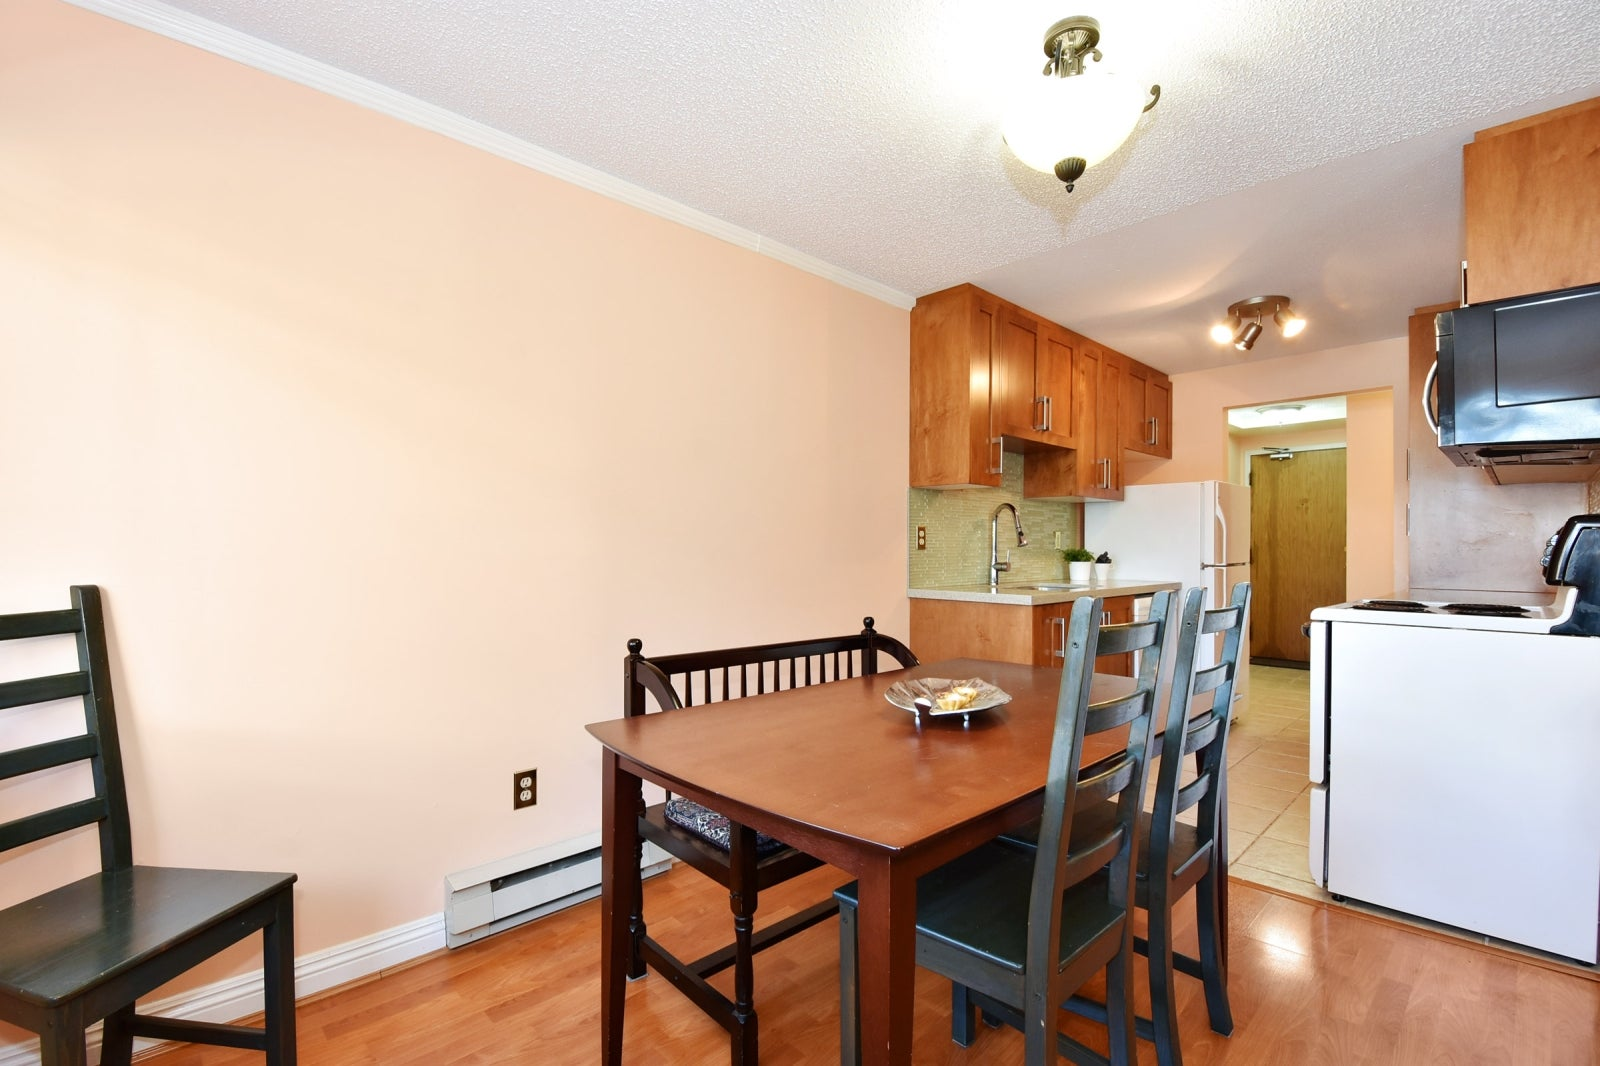 168 7293 MOFFATT ROAD - Brighouse South Apartment/Condo for sale, 2 Bedrooms (R2261480) #10